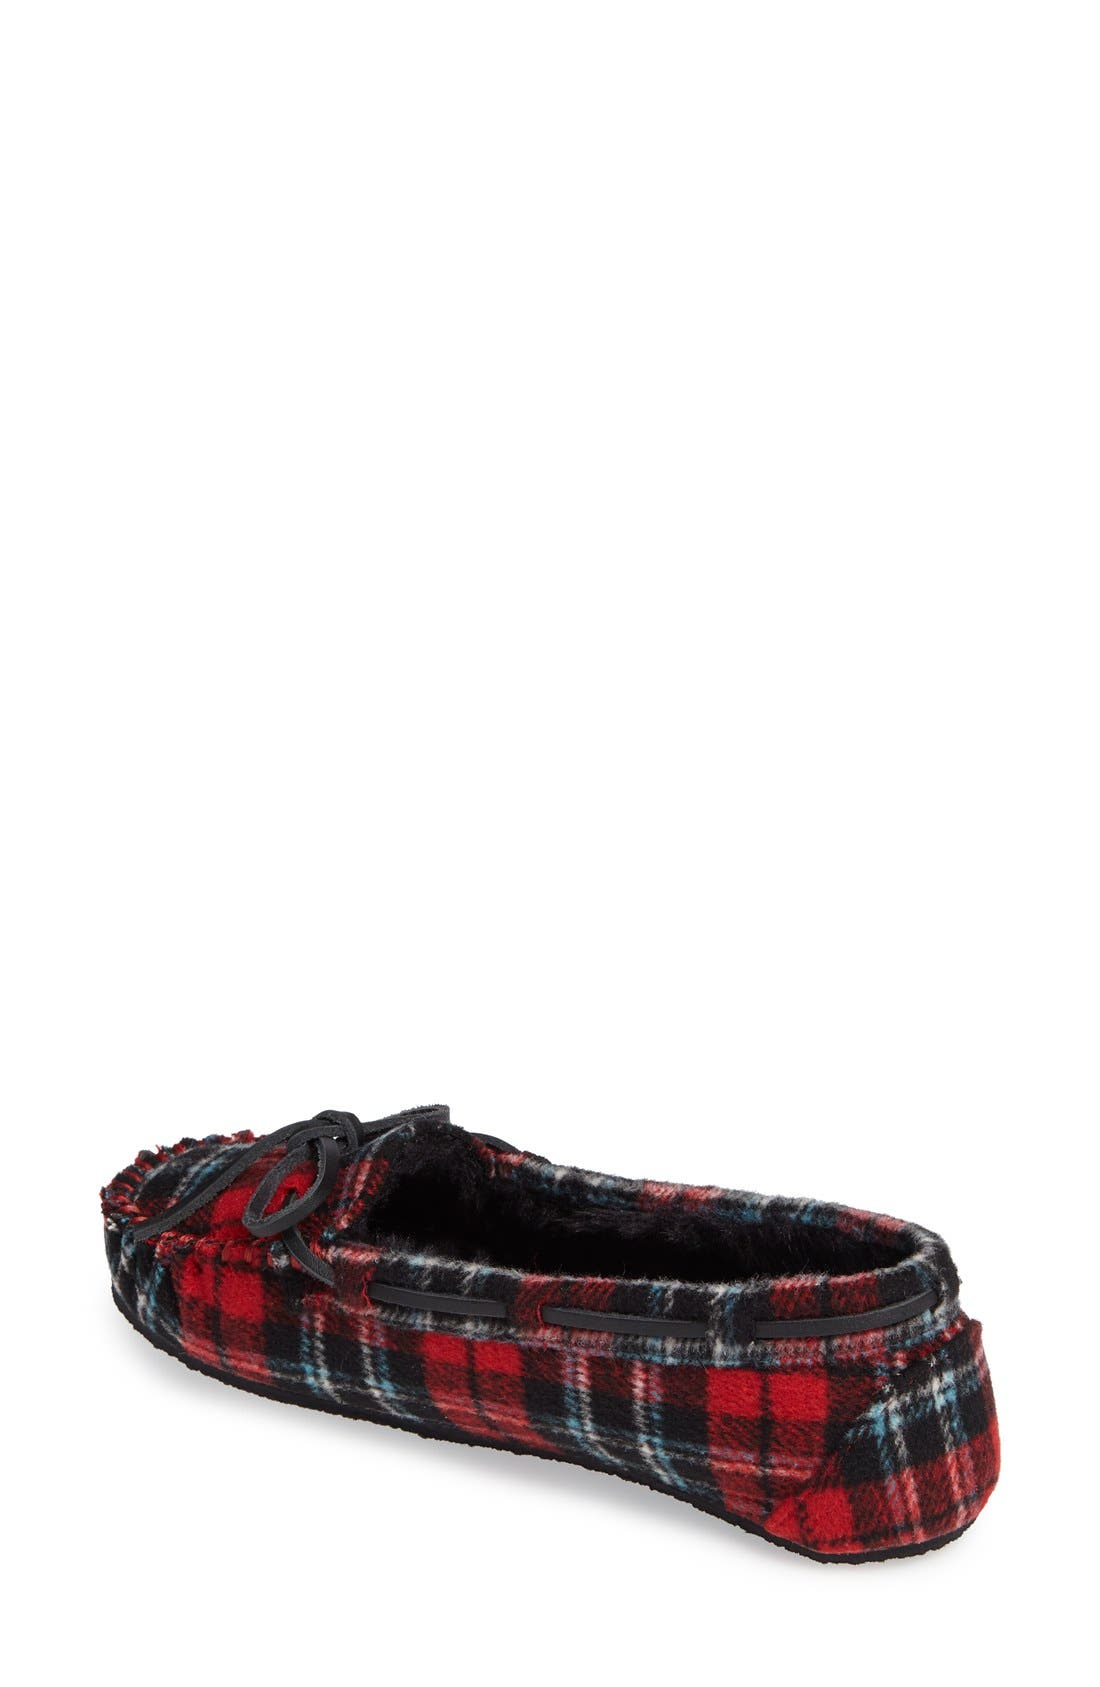 MINNETONKA, Cally Plaid Faux Fur Lined Slipper, Alternate thumbnail 2, color, RED